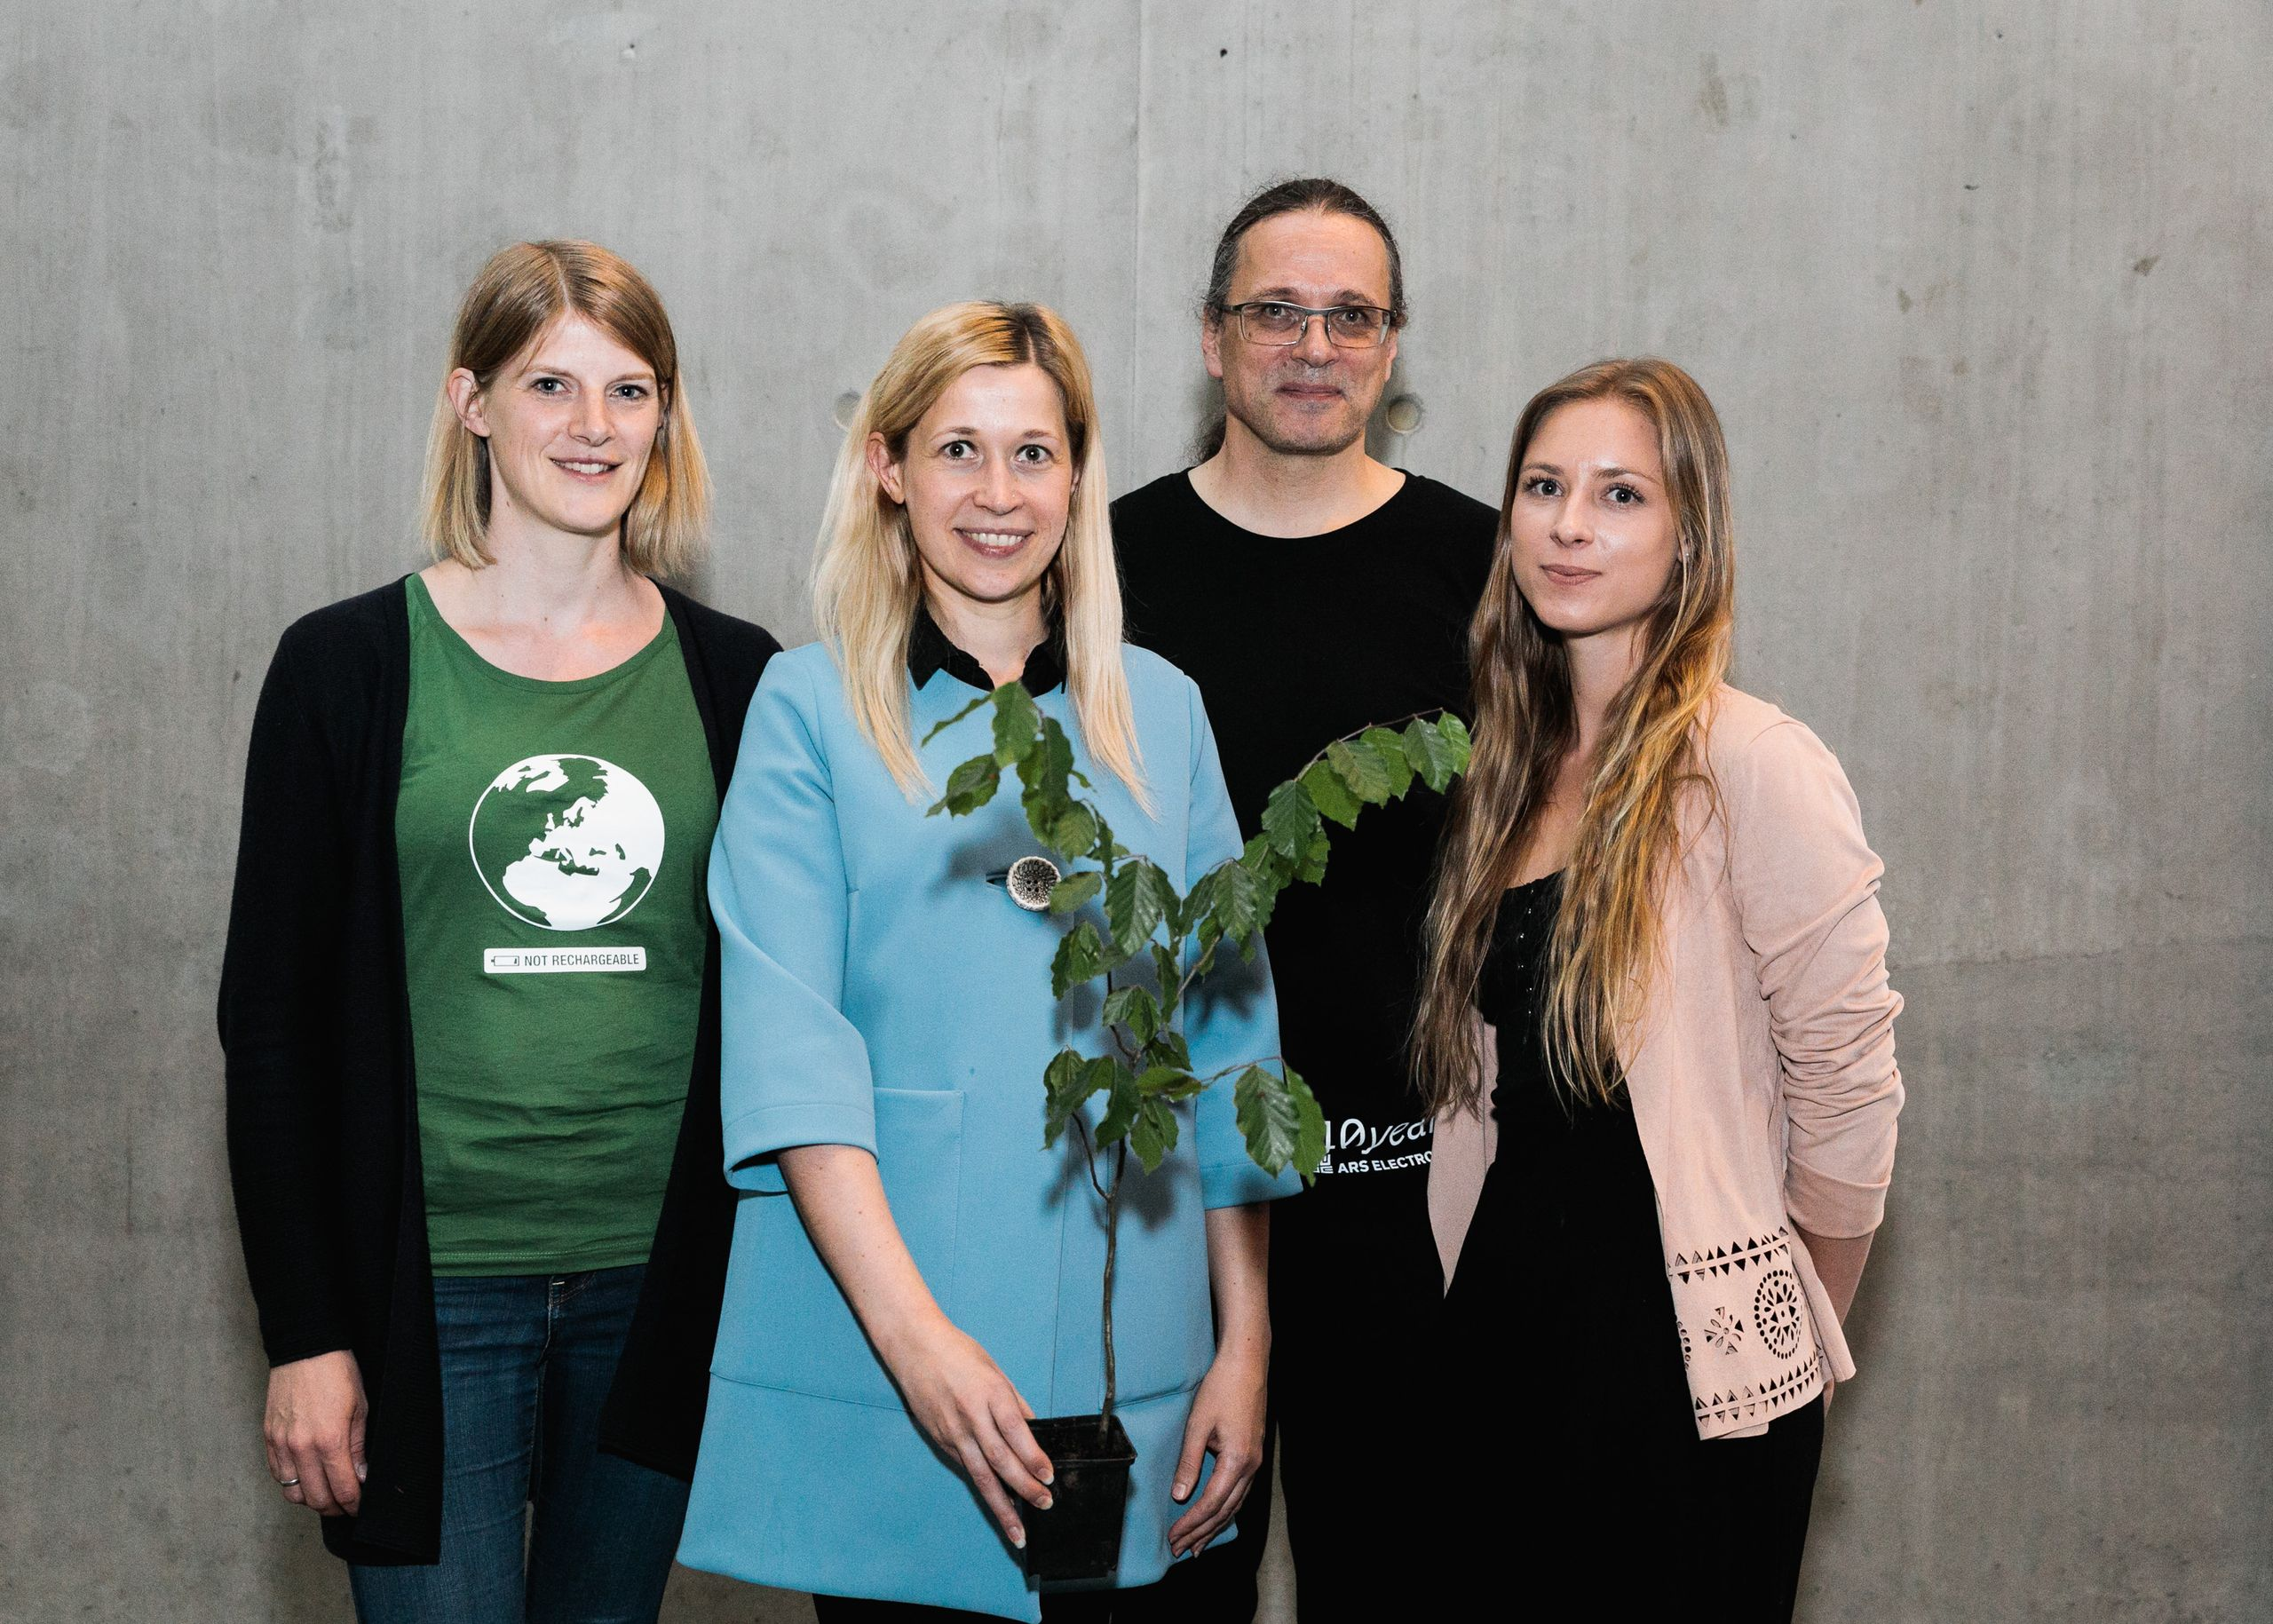 Foto von links: Julia (ParentsforFuture), Doris Lang-Mayerhofer (Stadträtin Linz), Gerfried Stocker (AEC), Lara (FridaysforFuture)